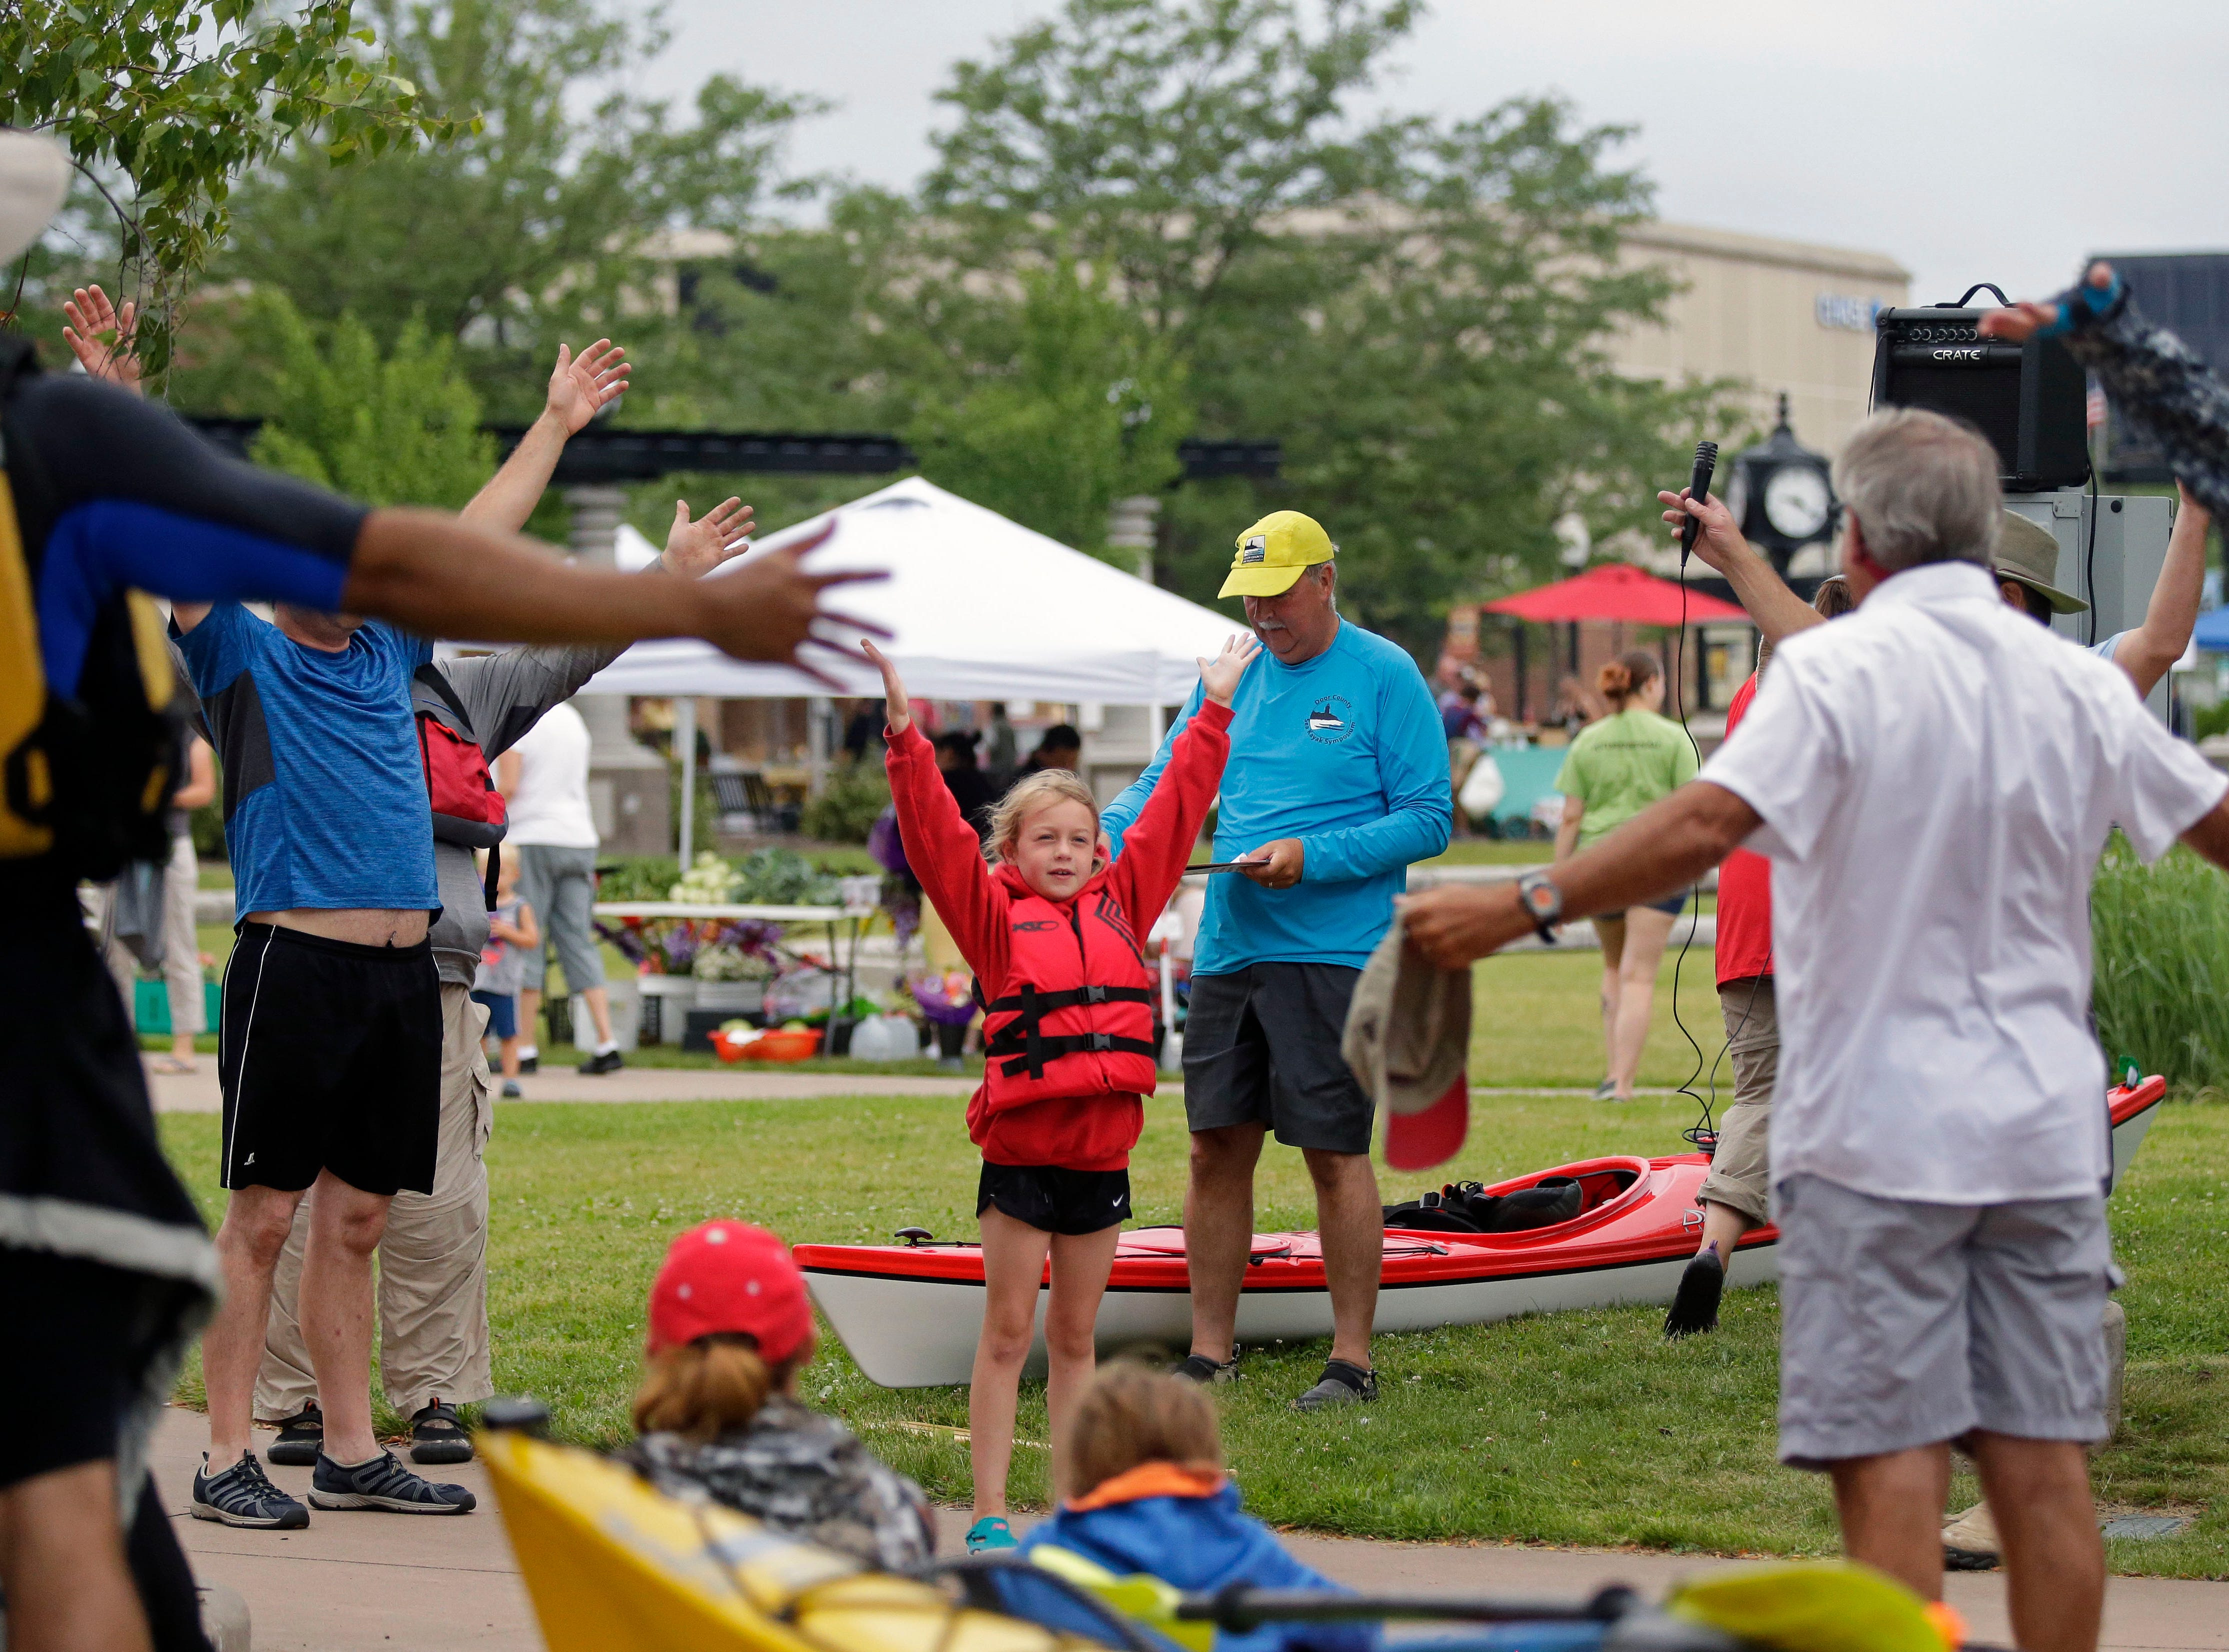 Ella Pynenberg leads kayakers in a stretch before the Park-to-Park Paddle get started Saturday, July 21, 2018, at Shattuck Park in Neenah, Wis.